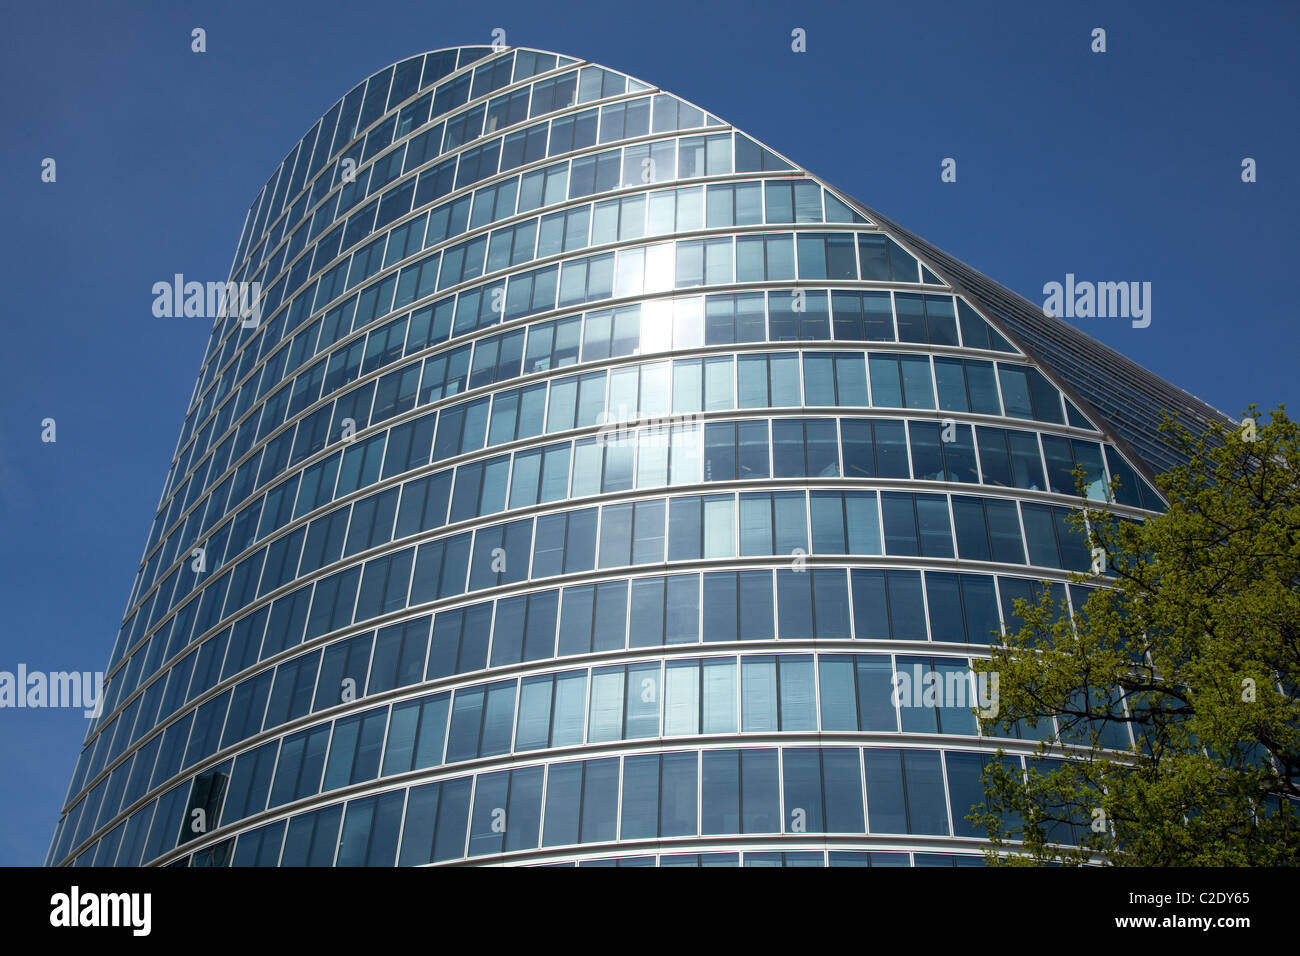 Moor House, Moorgate, City of London designed by Lord Foster - Stock Image